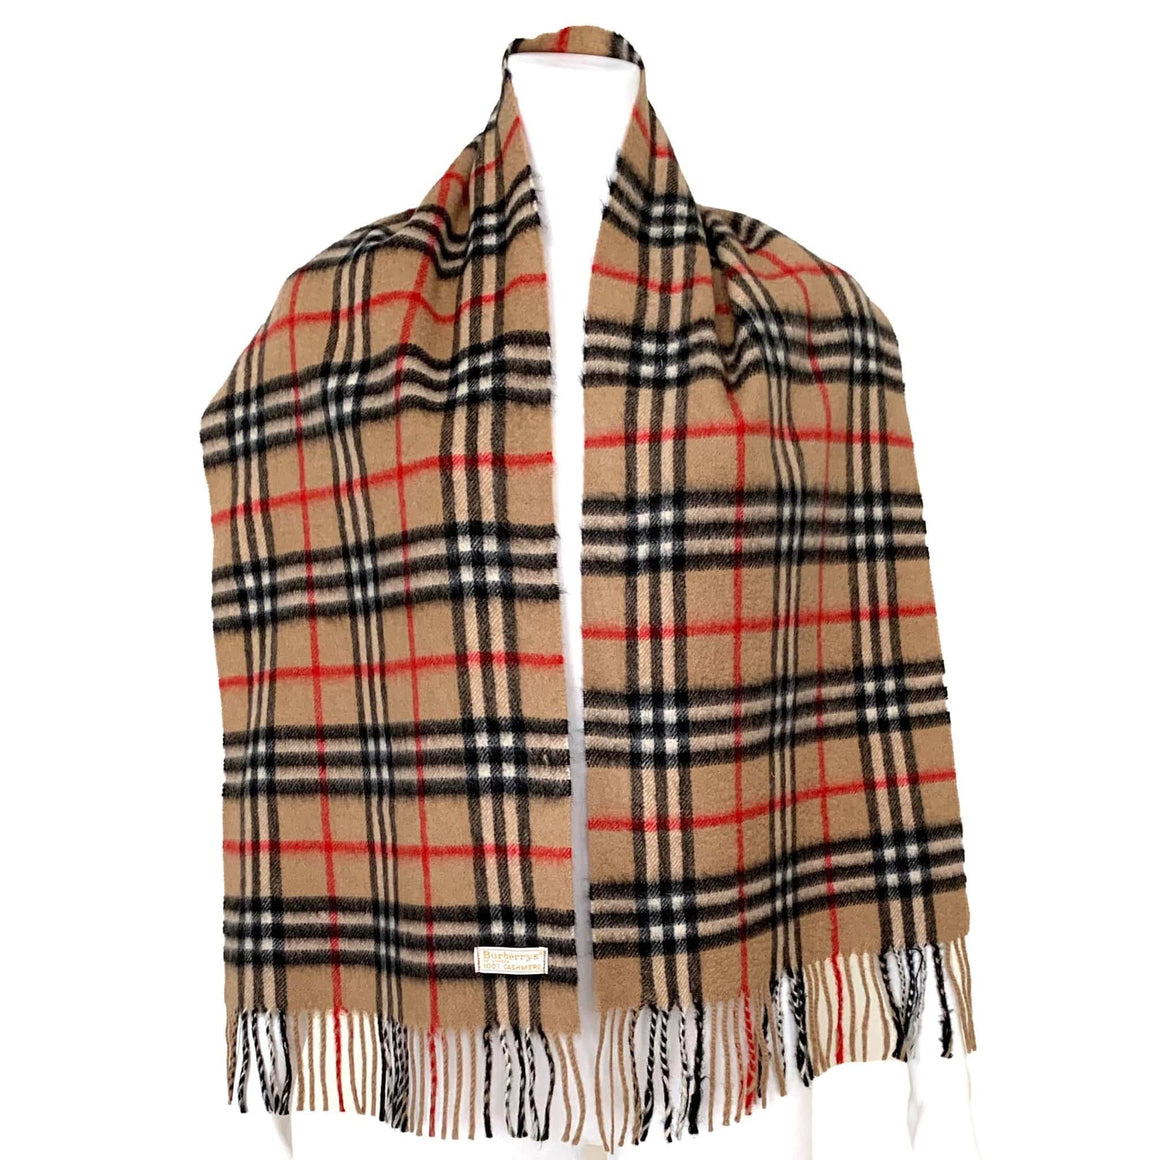 kristina iulo vintage collections Men's Clothing & Accessories Vintage Classic Burberrys London Camel Check Pattern Cashmere Scarf